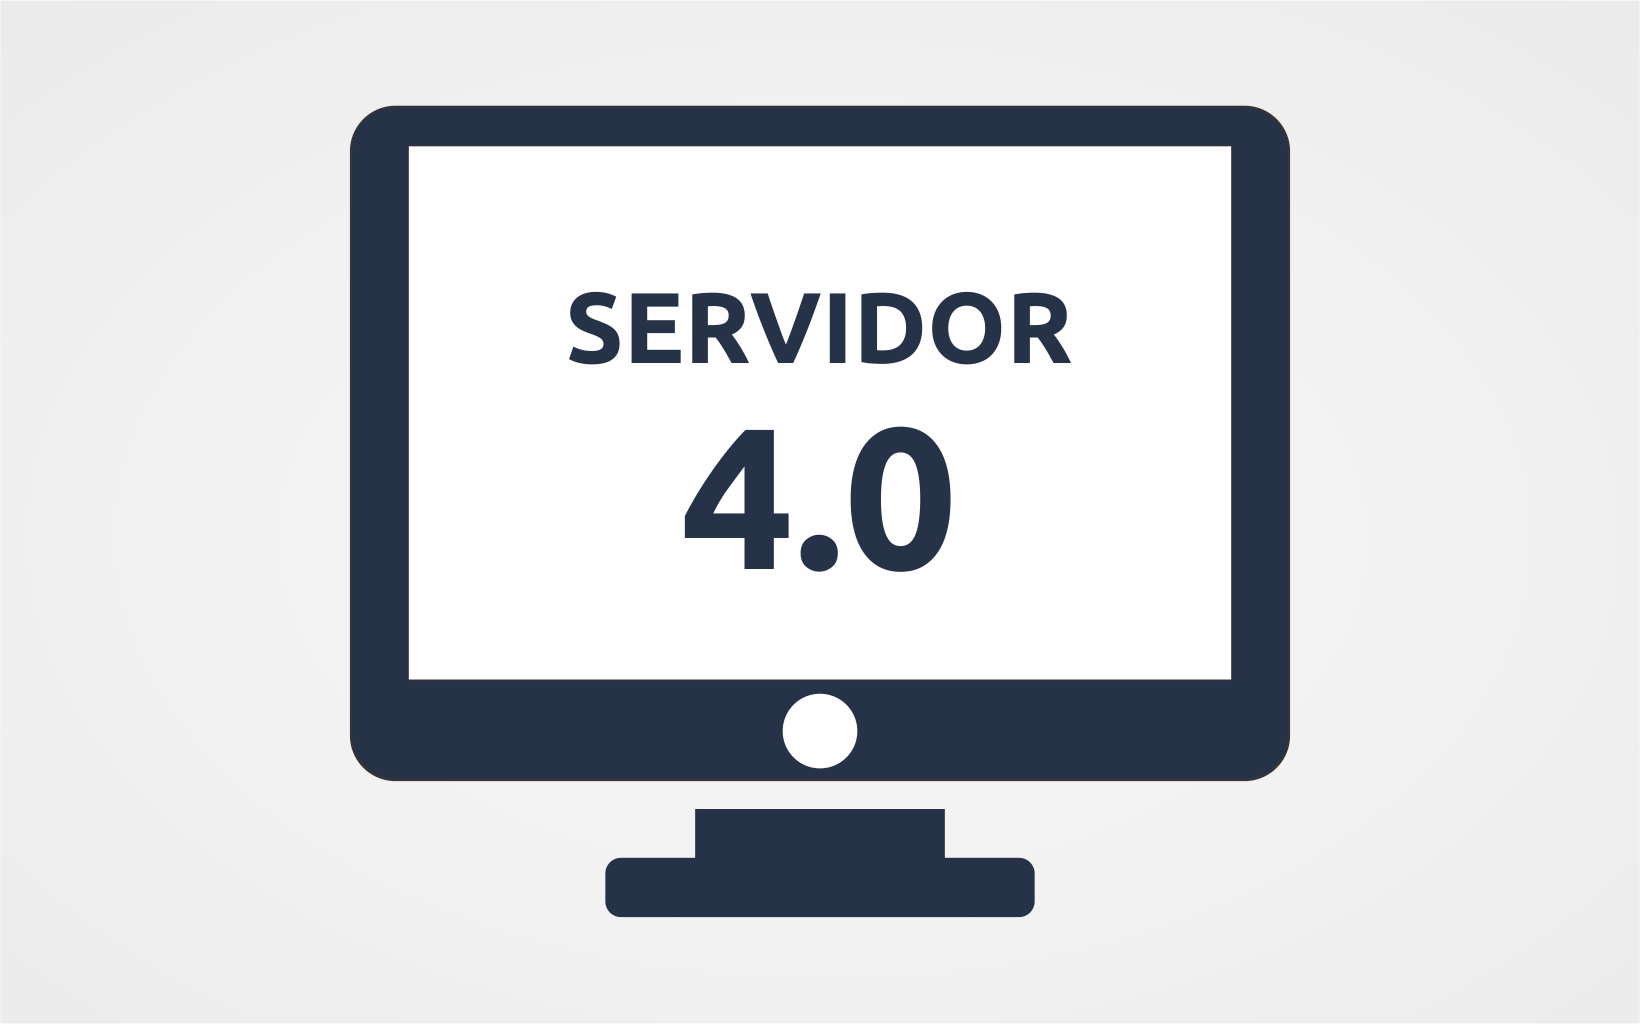 Servidor 4.0 e as Habilidades do Futuro (EAD)